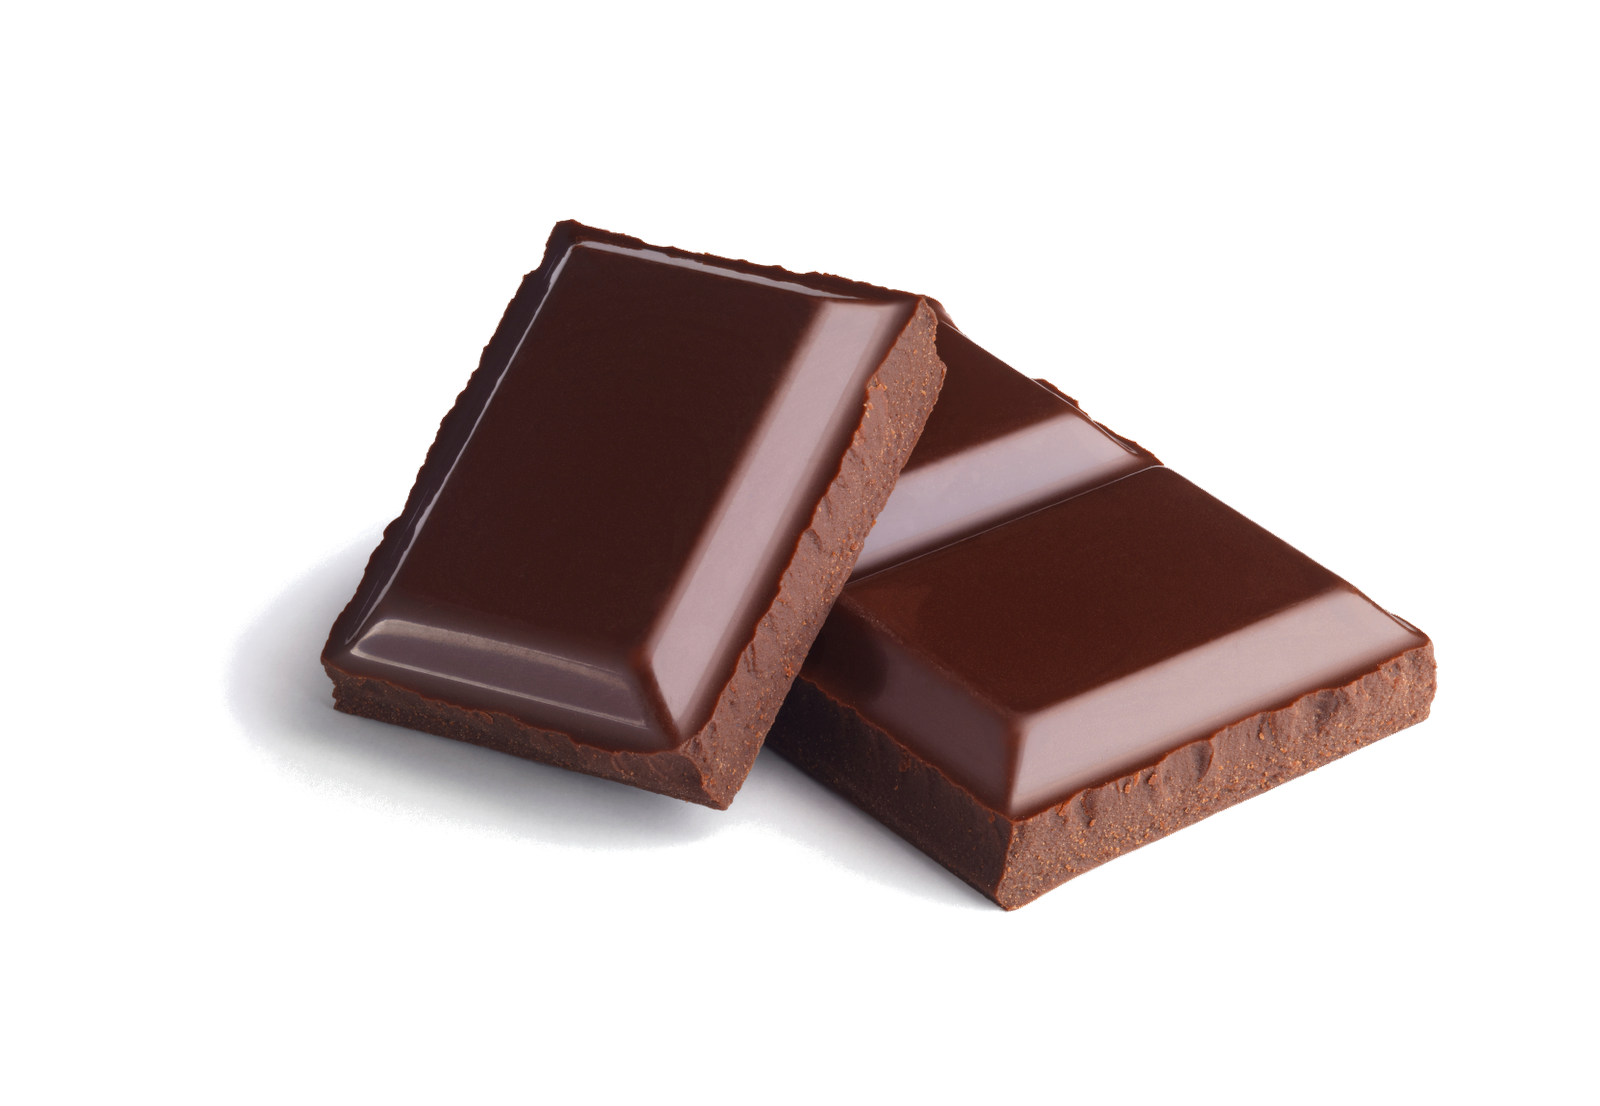 Png chocolate. Images free pictures download